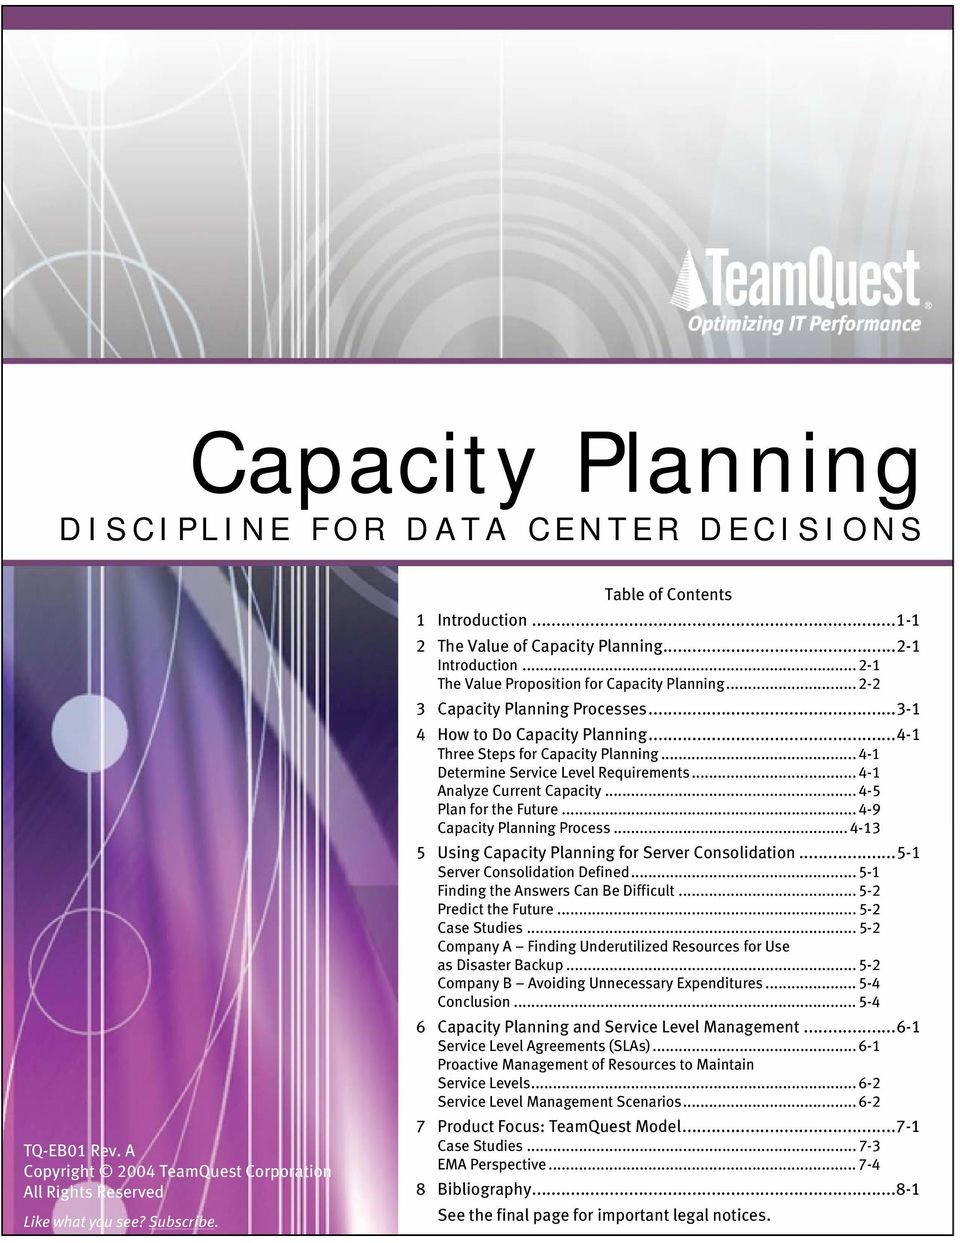 ..4-1 Three Steps for Capacity Planning... 4-1 Determine Service Level Requirements... 4-1 Analyze Current Capacity... 4-5 Plan for the Future... 4-9 Capacity Planning Process.